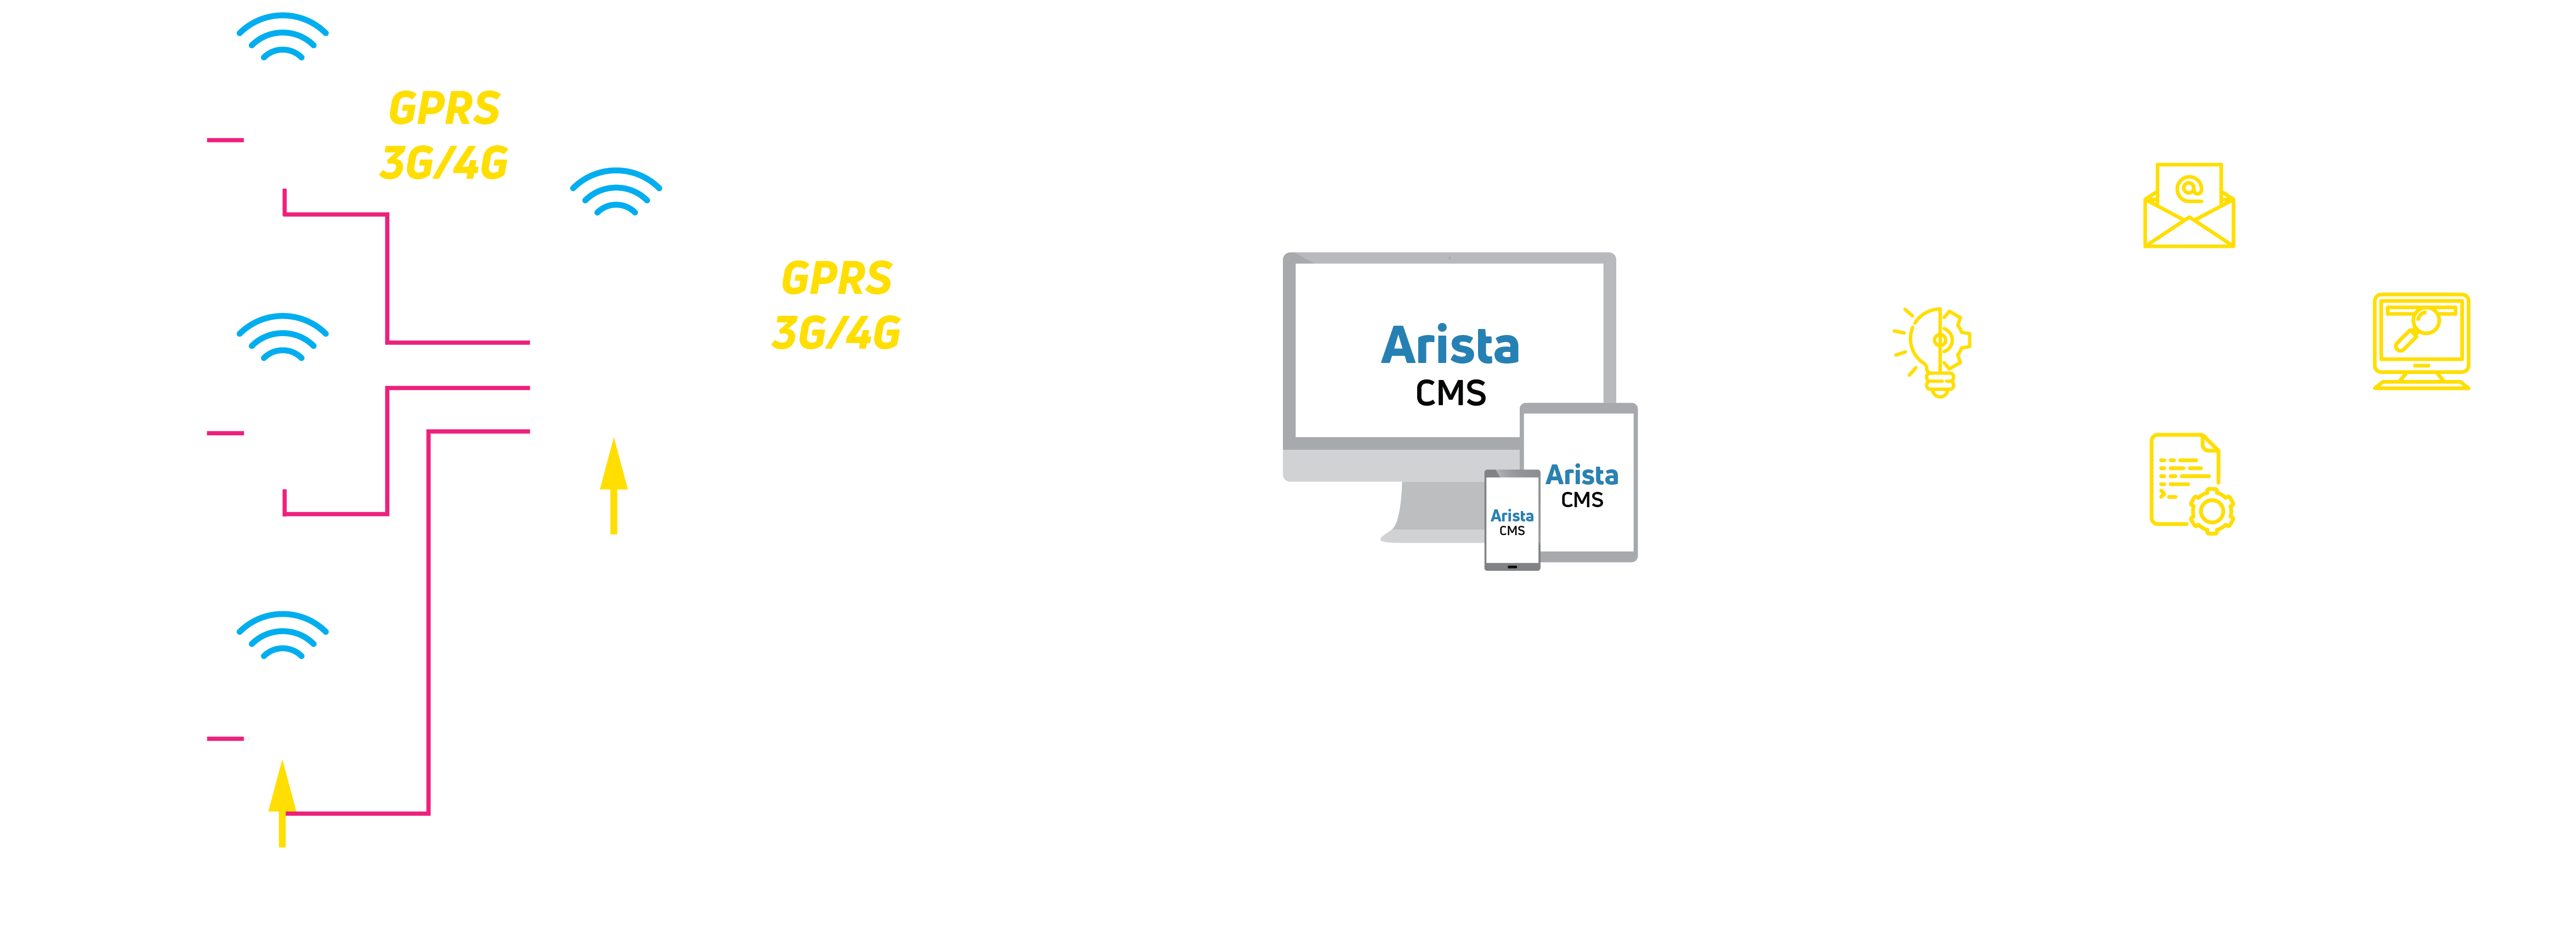 Monitoring substations architecture Arista CMS